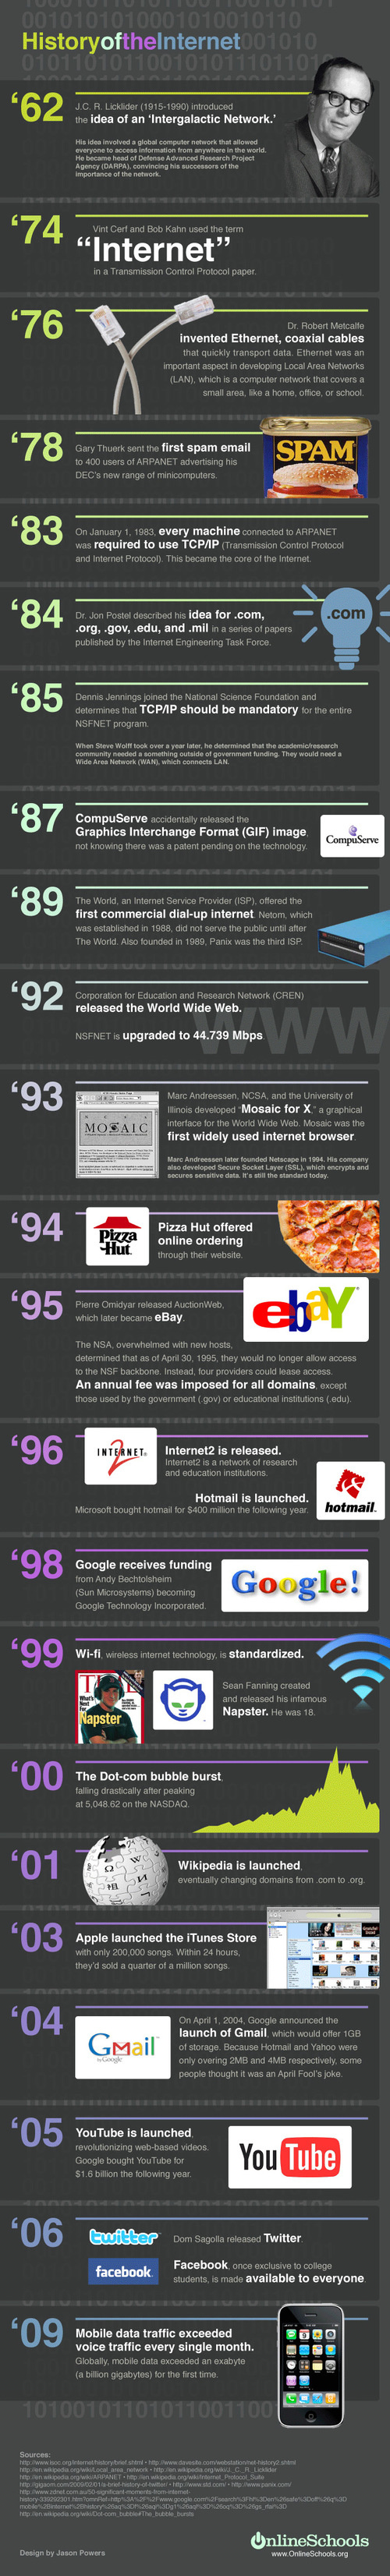 The History of the Internet, Visualized